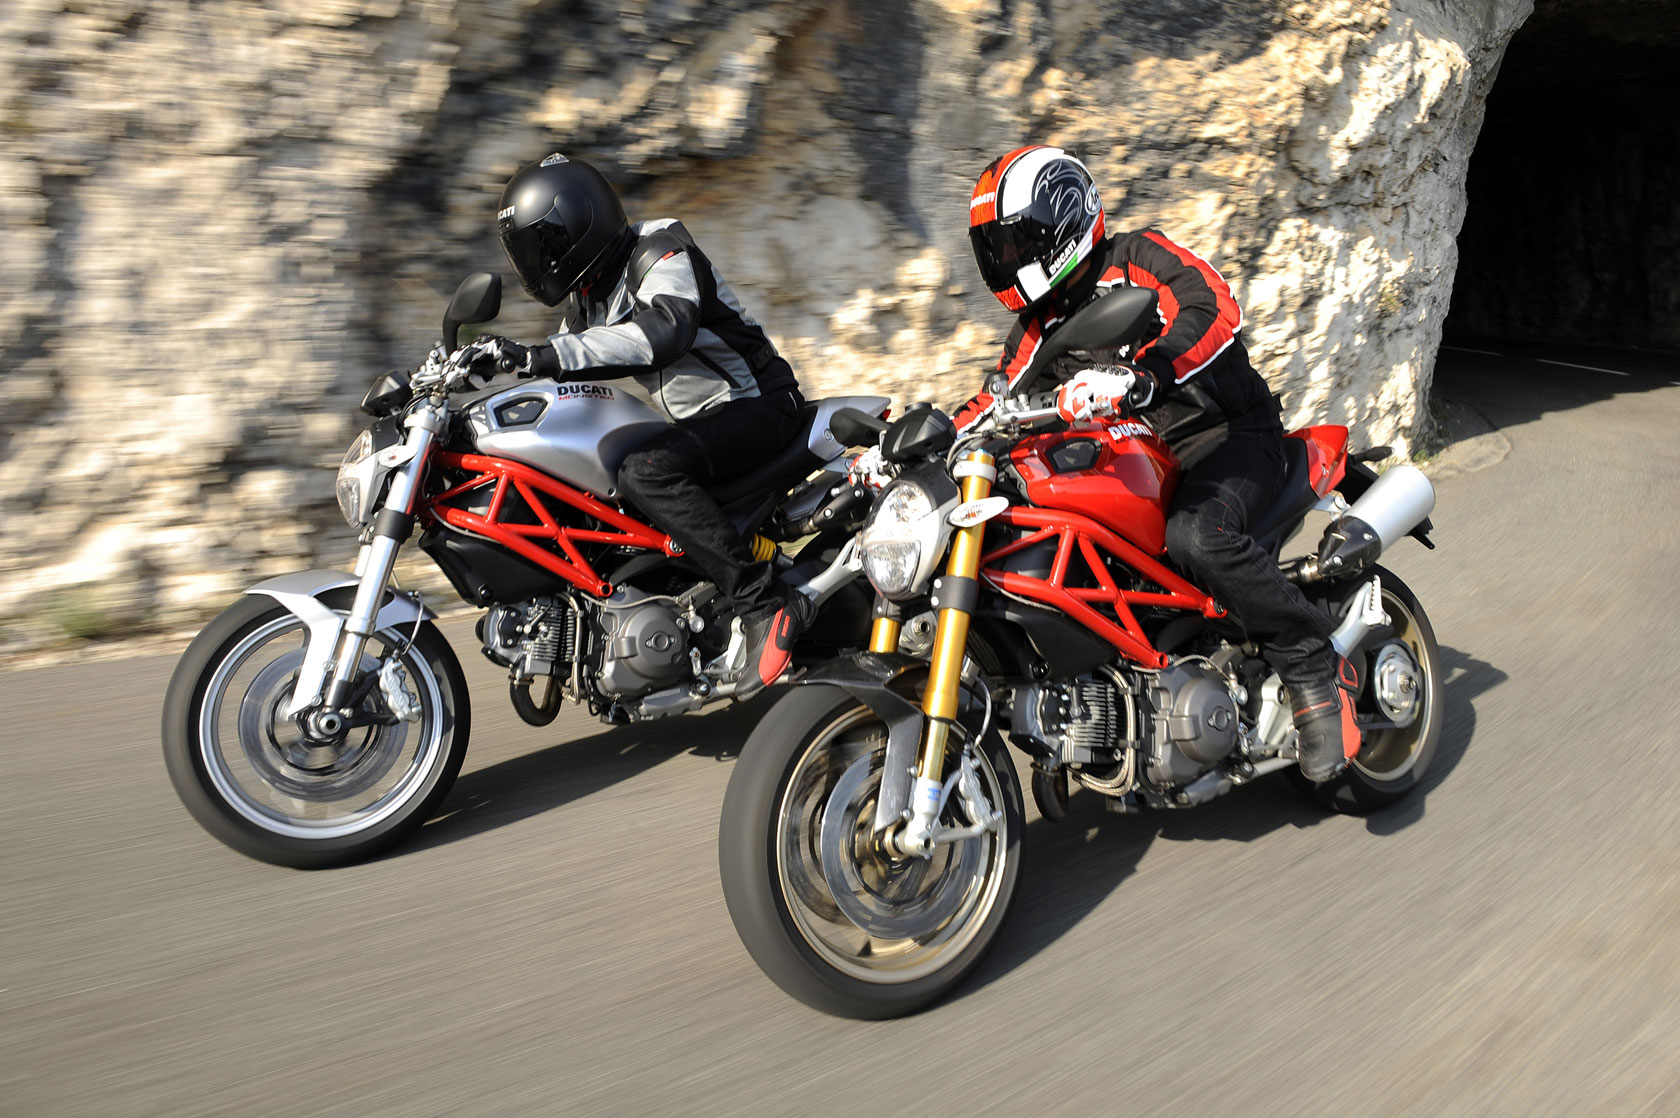 Ducati Monster 1100 S images #79353